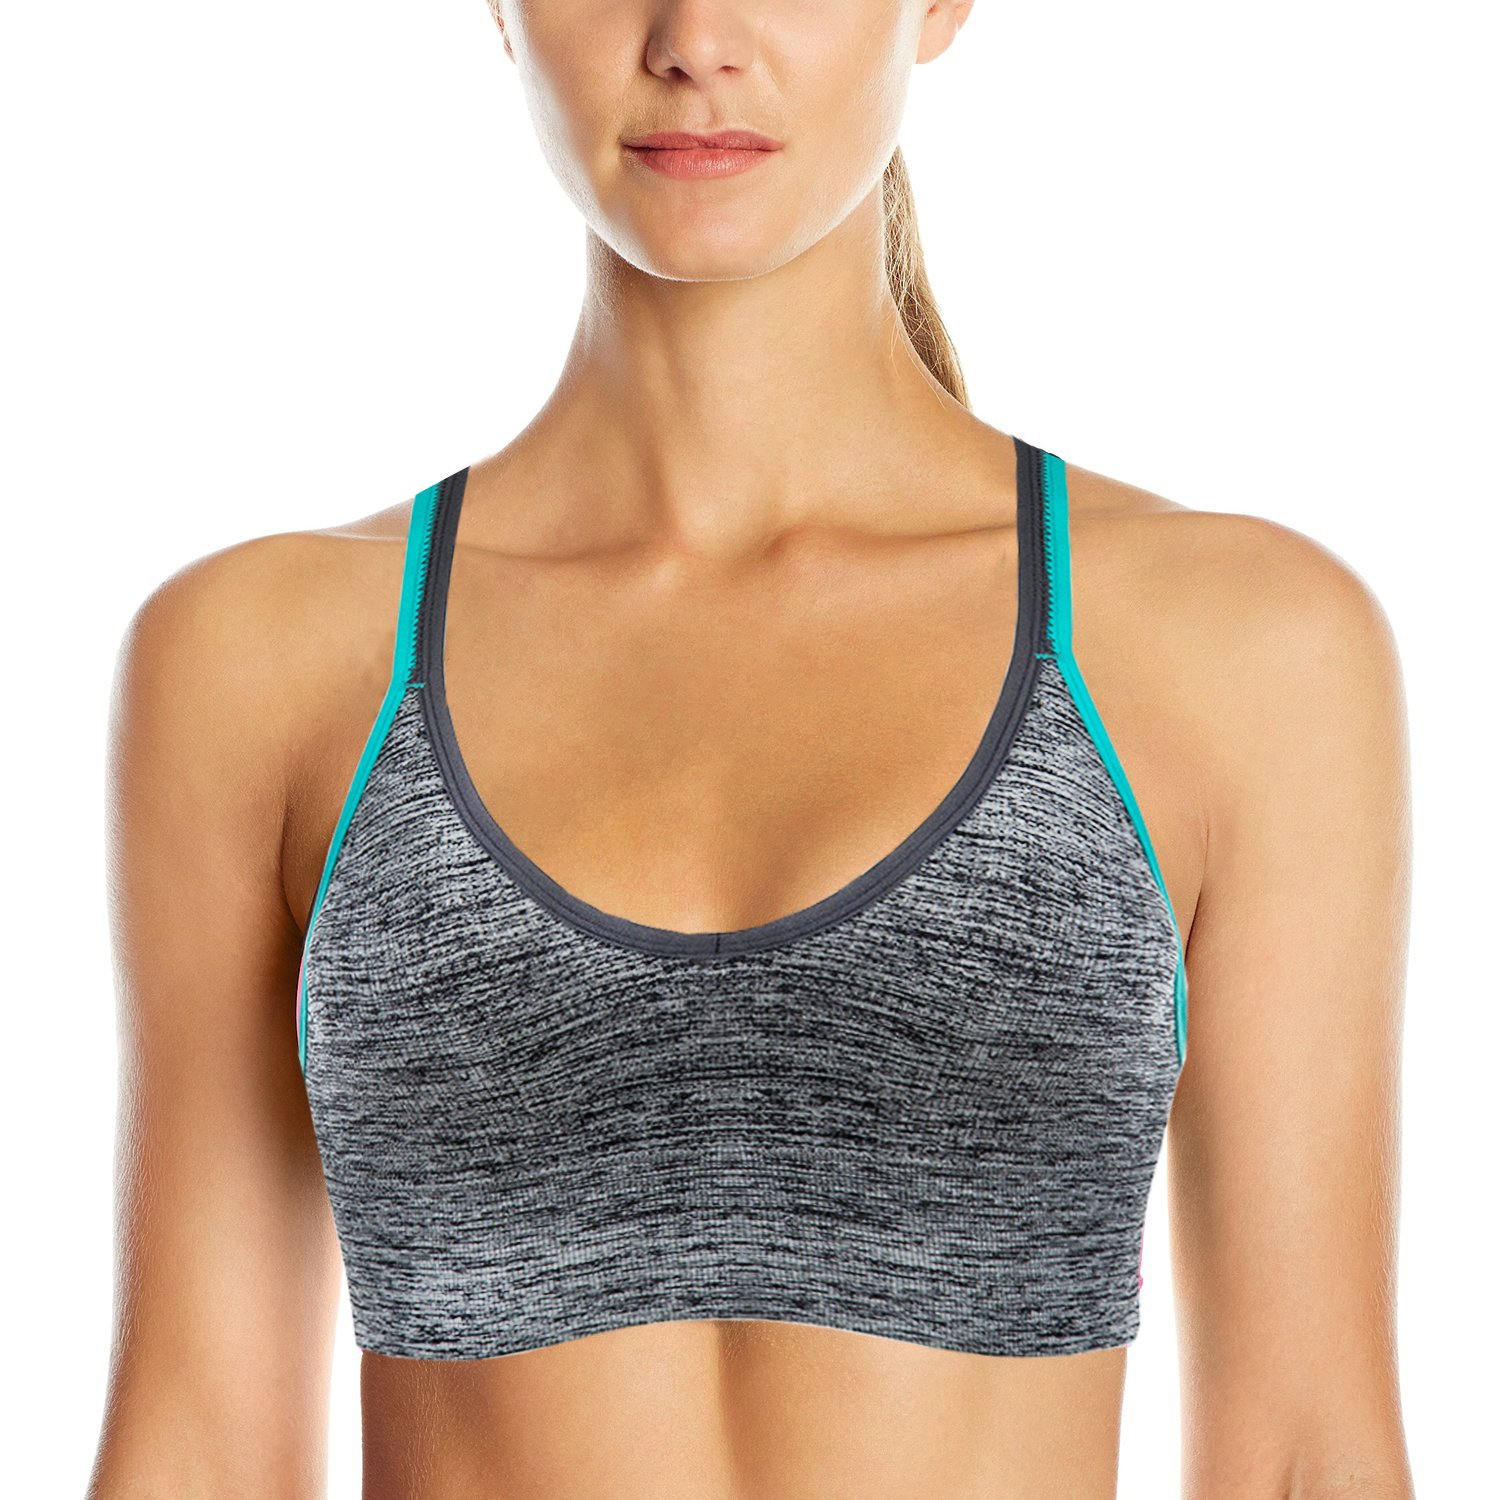 AKAMC Women's Removable Padded Sports Bras Medium Support Workout Yoga Bra 3 Pack by AKAMC (Image #2)